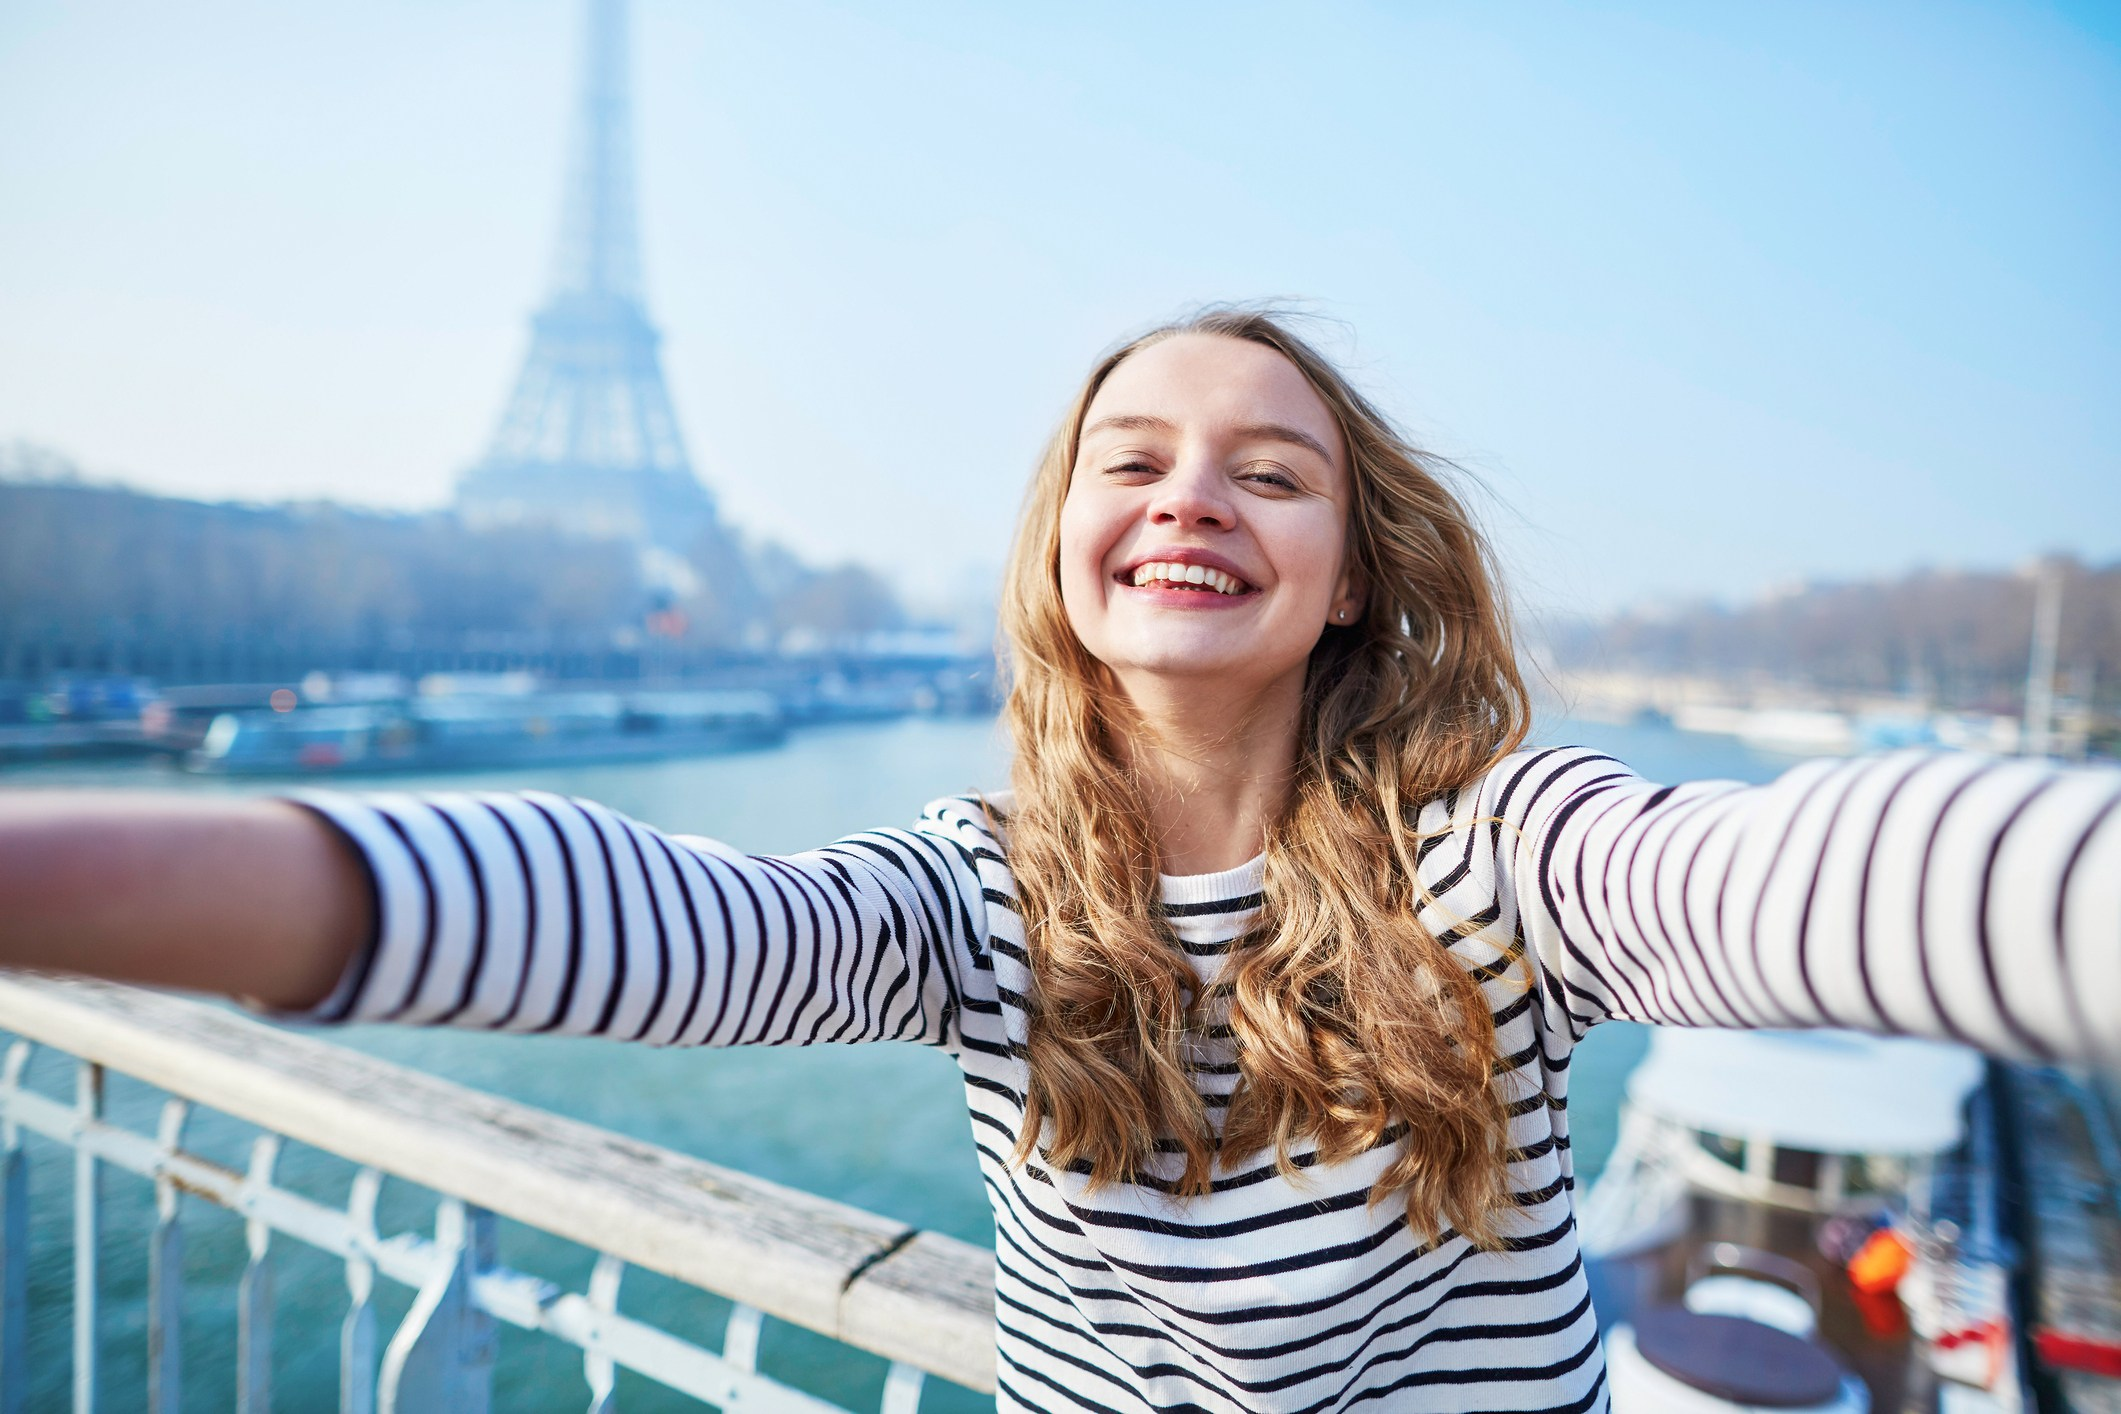 Girl taking a picture in Paris by the Eiffel Tower